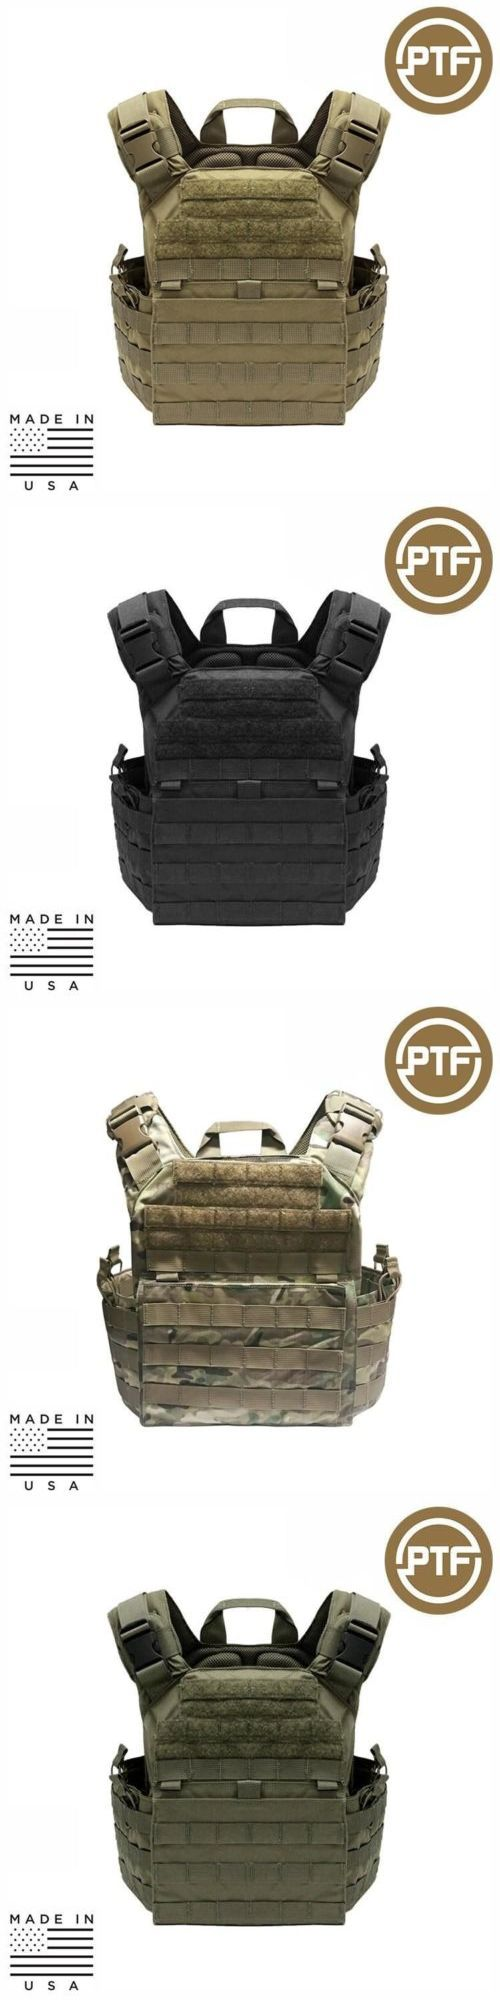 Chest Rigs and Tactical Vests 177891: Ptf Force Defender Series Tactical Rifle Plate Carrier - Elite Pro -> BUY IT NOW ONLY: $159.99 on eBay!